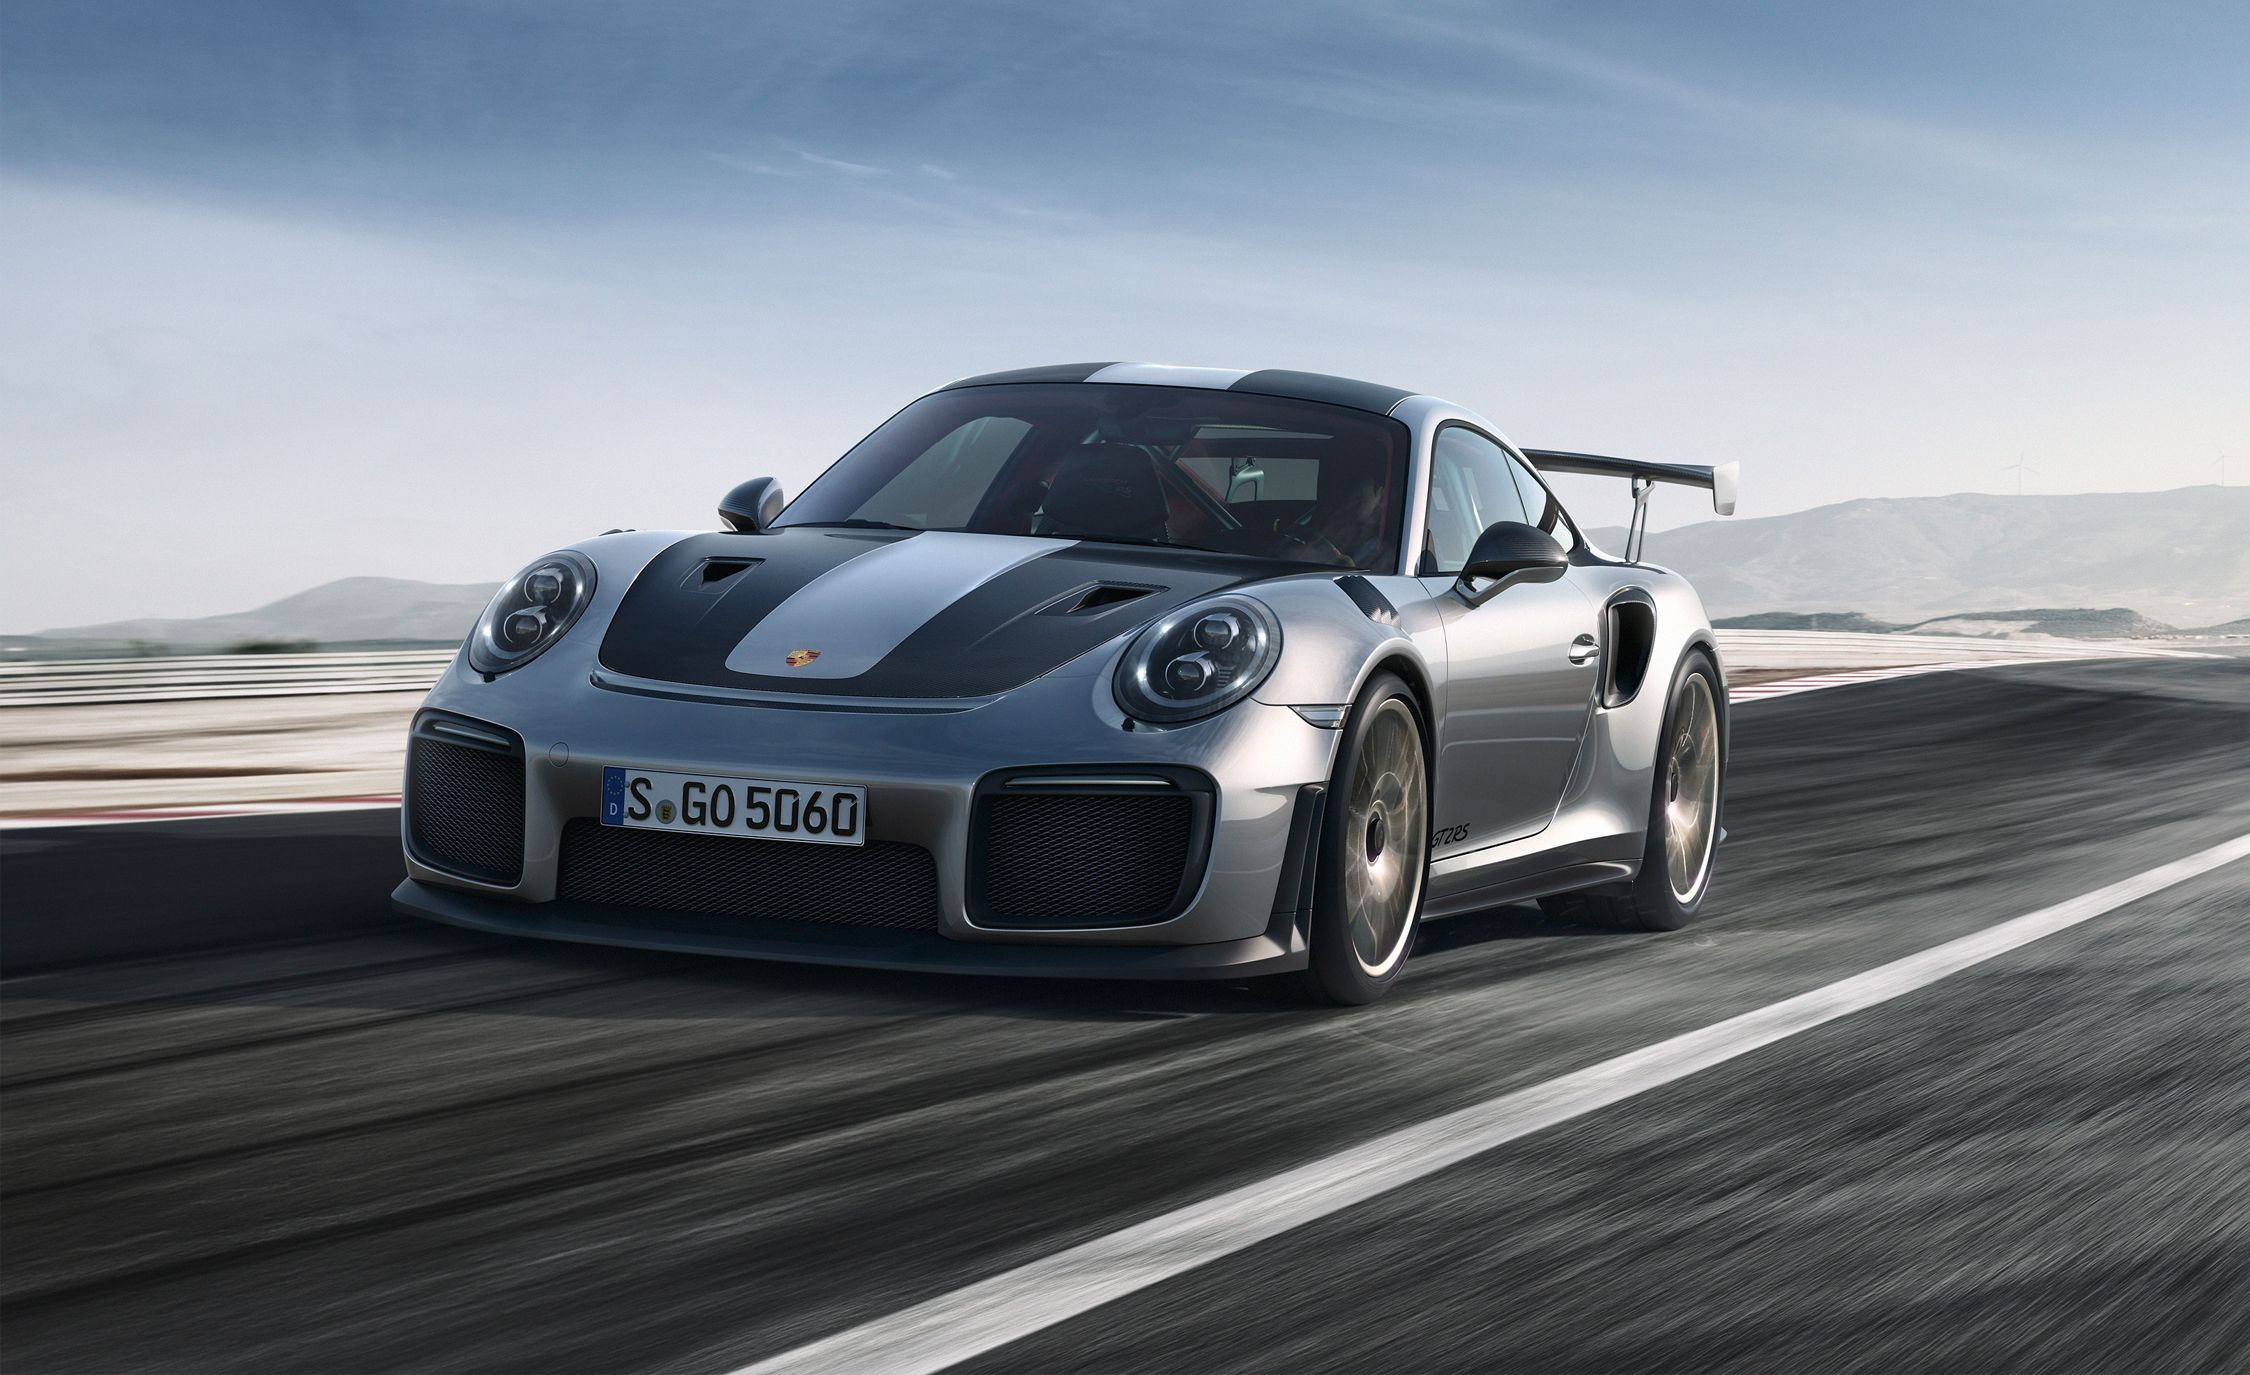 2018-porsche-911-gt2-rs-photos-and-info-news-car-and-driver-photo-684648-s-original Extraordinary Porsche 911 Gt2 Rs Used Cars Trend